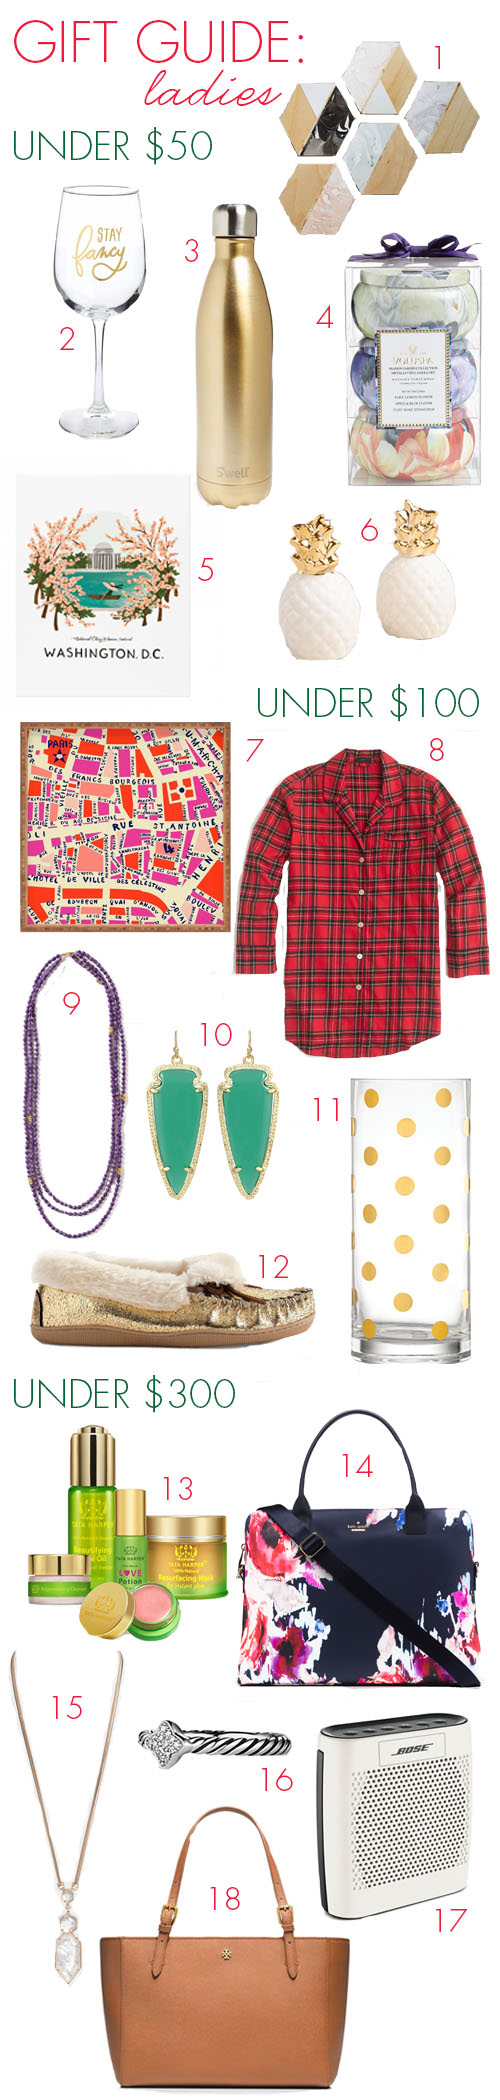 gift guide ladies 2015